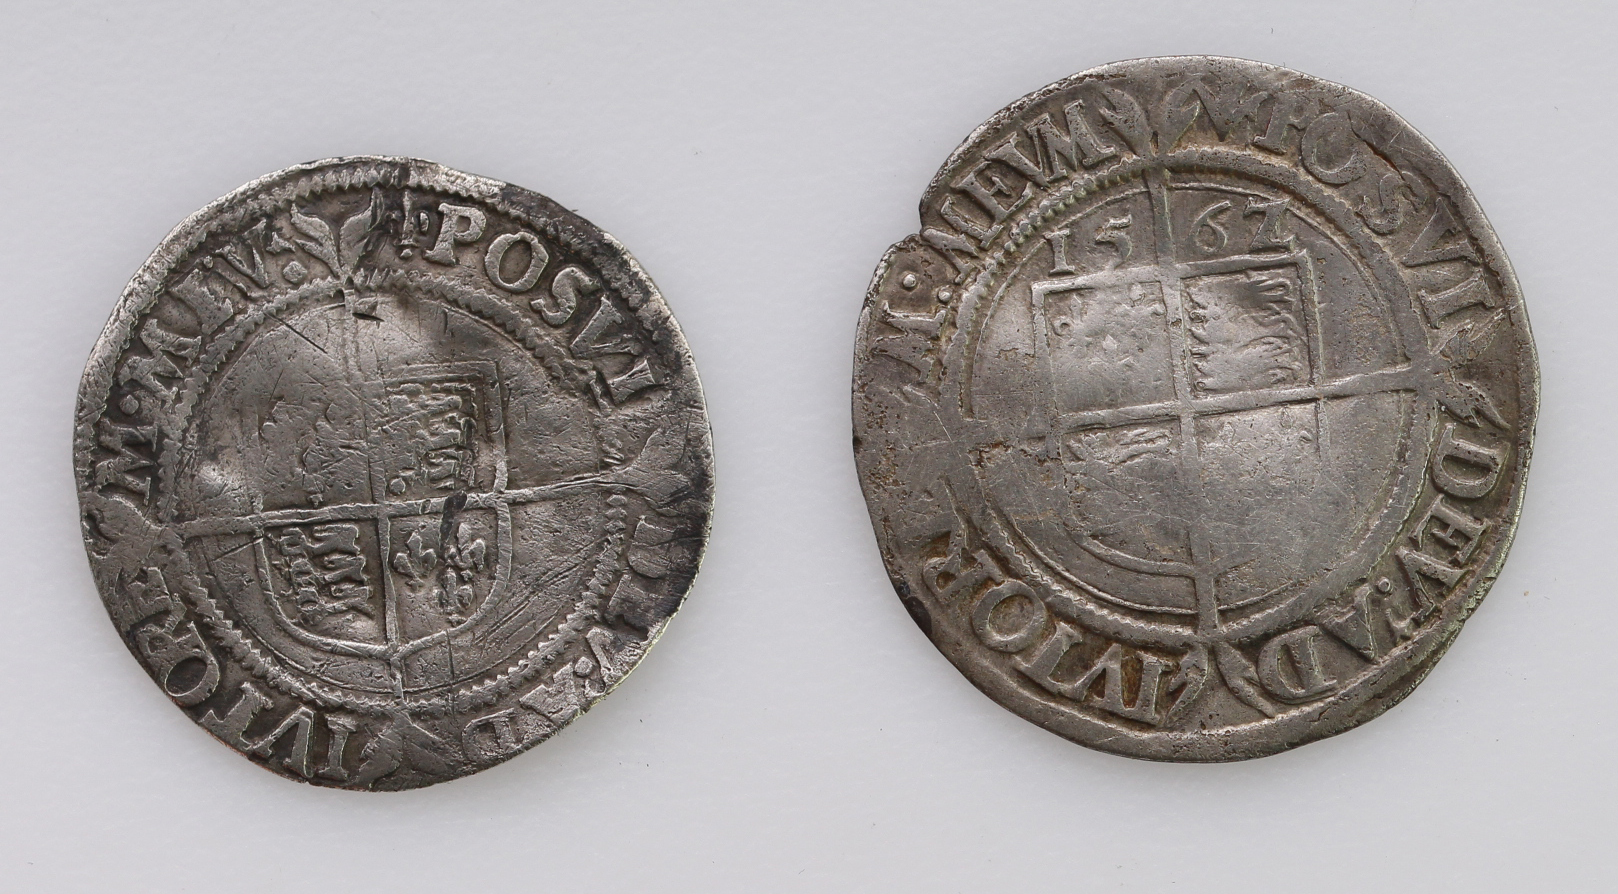 Elizabeth I Silver Groats (2): First Issue, mm. Lis, S.2551, crinkled nF; and 1562/1 overdate mm.